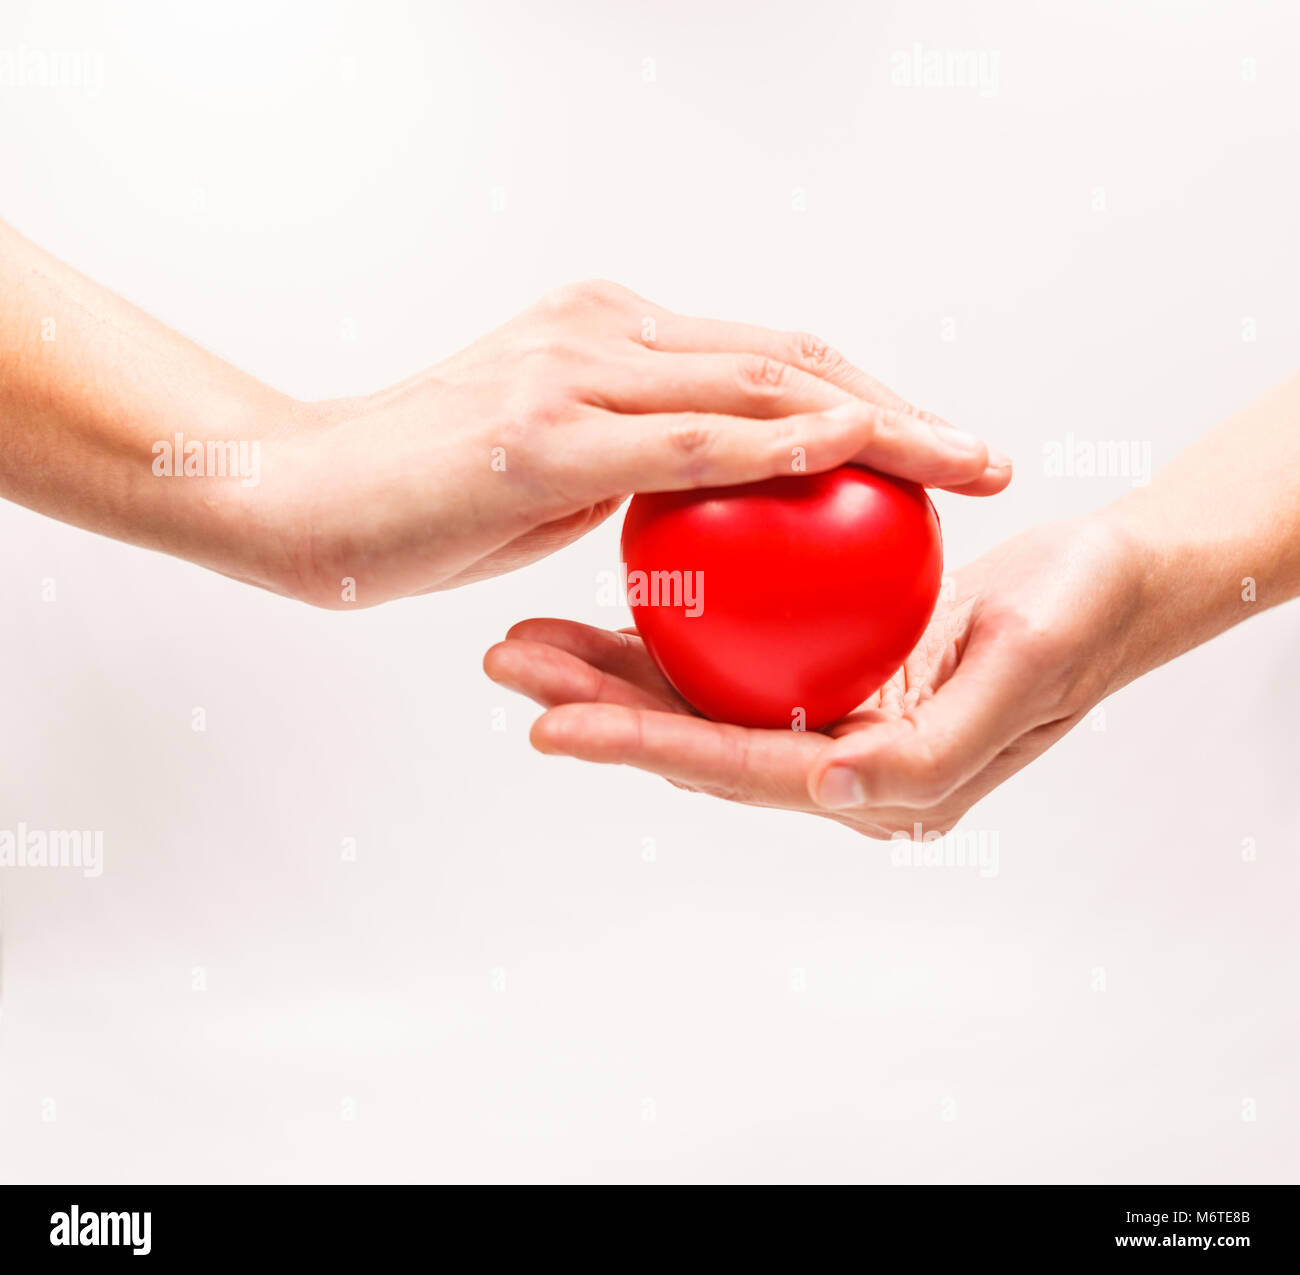 Heart shape in the helping hands on white background. Heart illness, disease protection, proactive checkup, mind - Stock Image